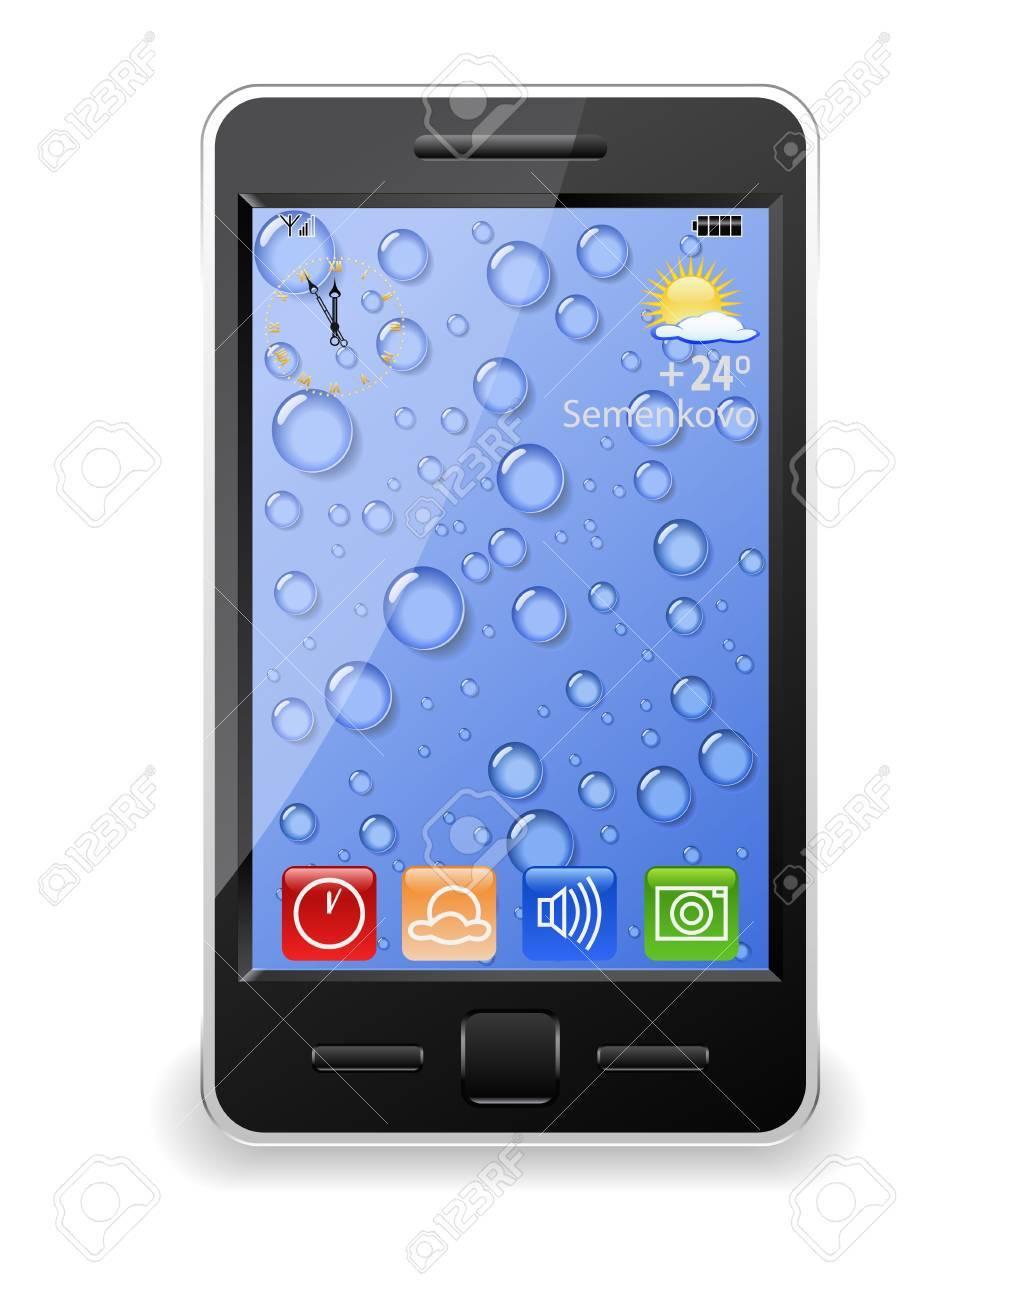 Modern mobile phone is shown in the image. - 11056942